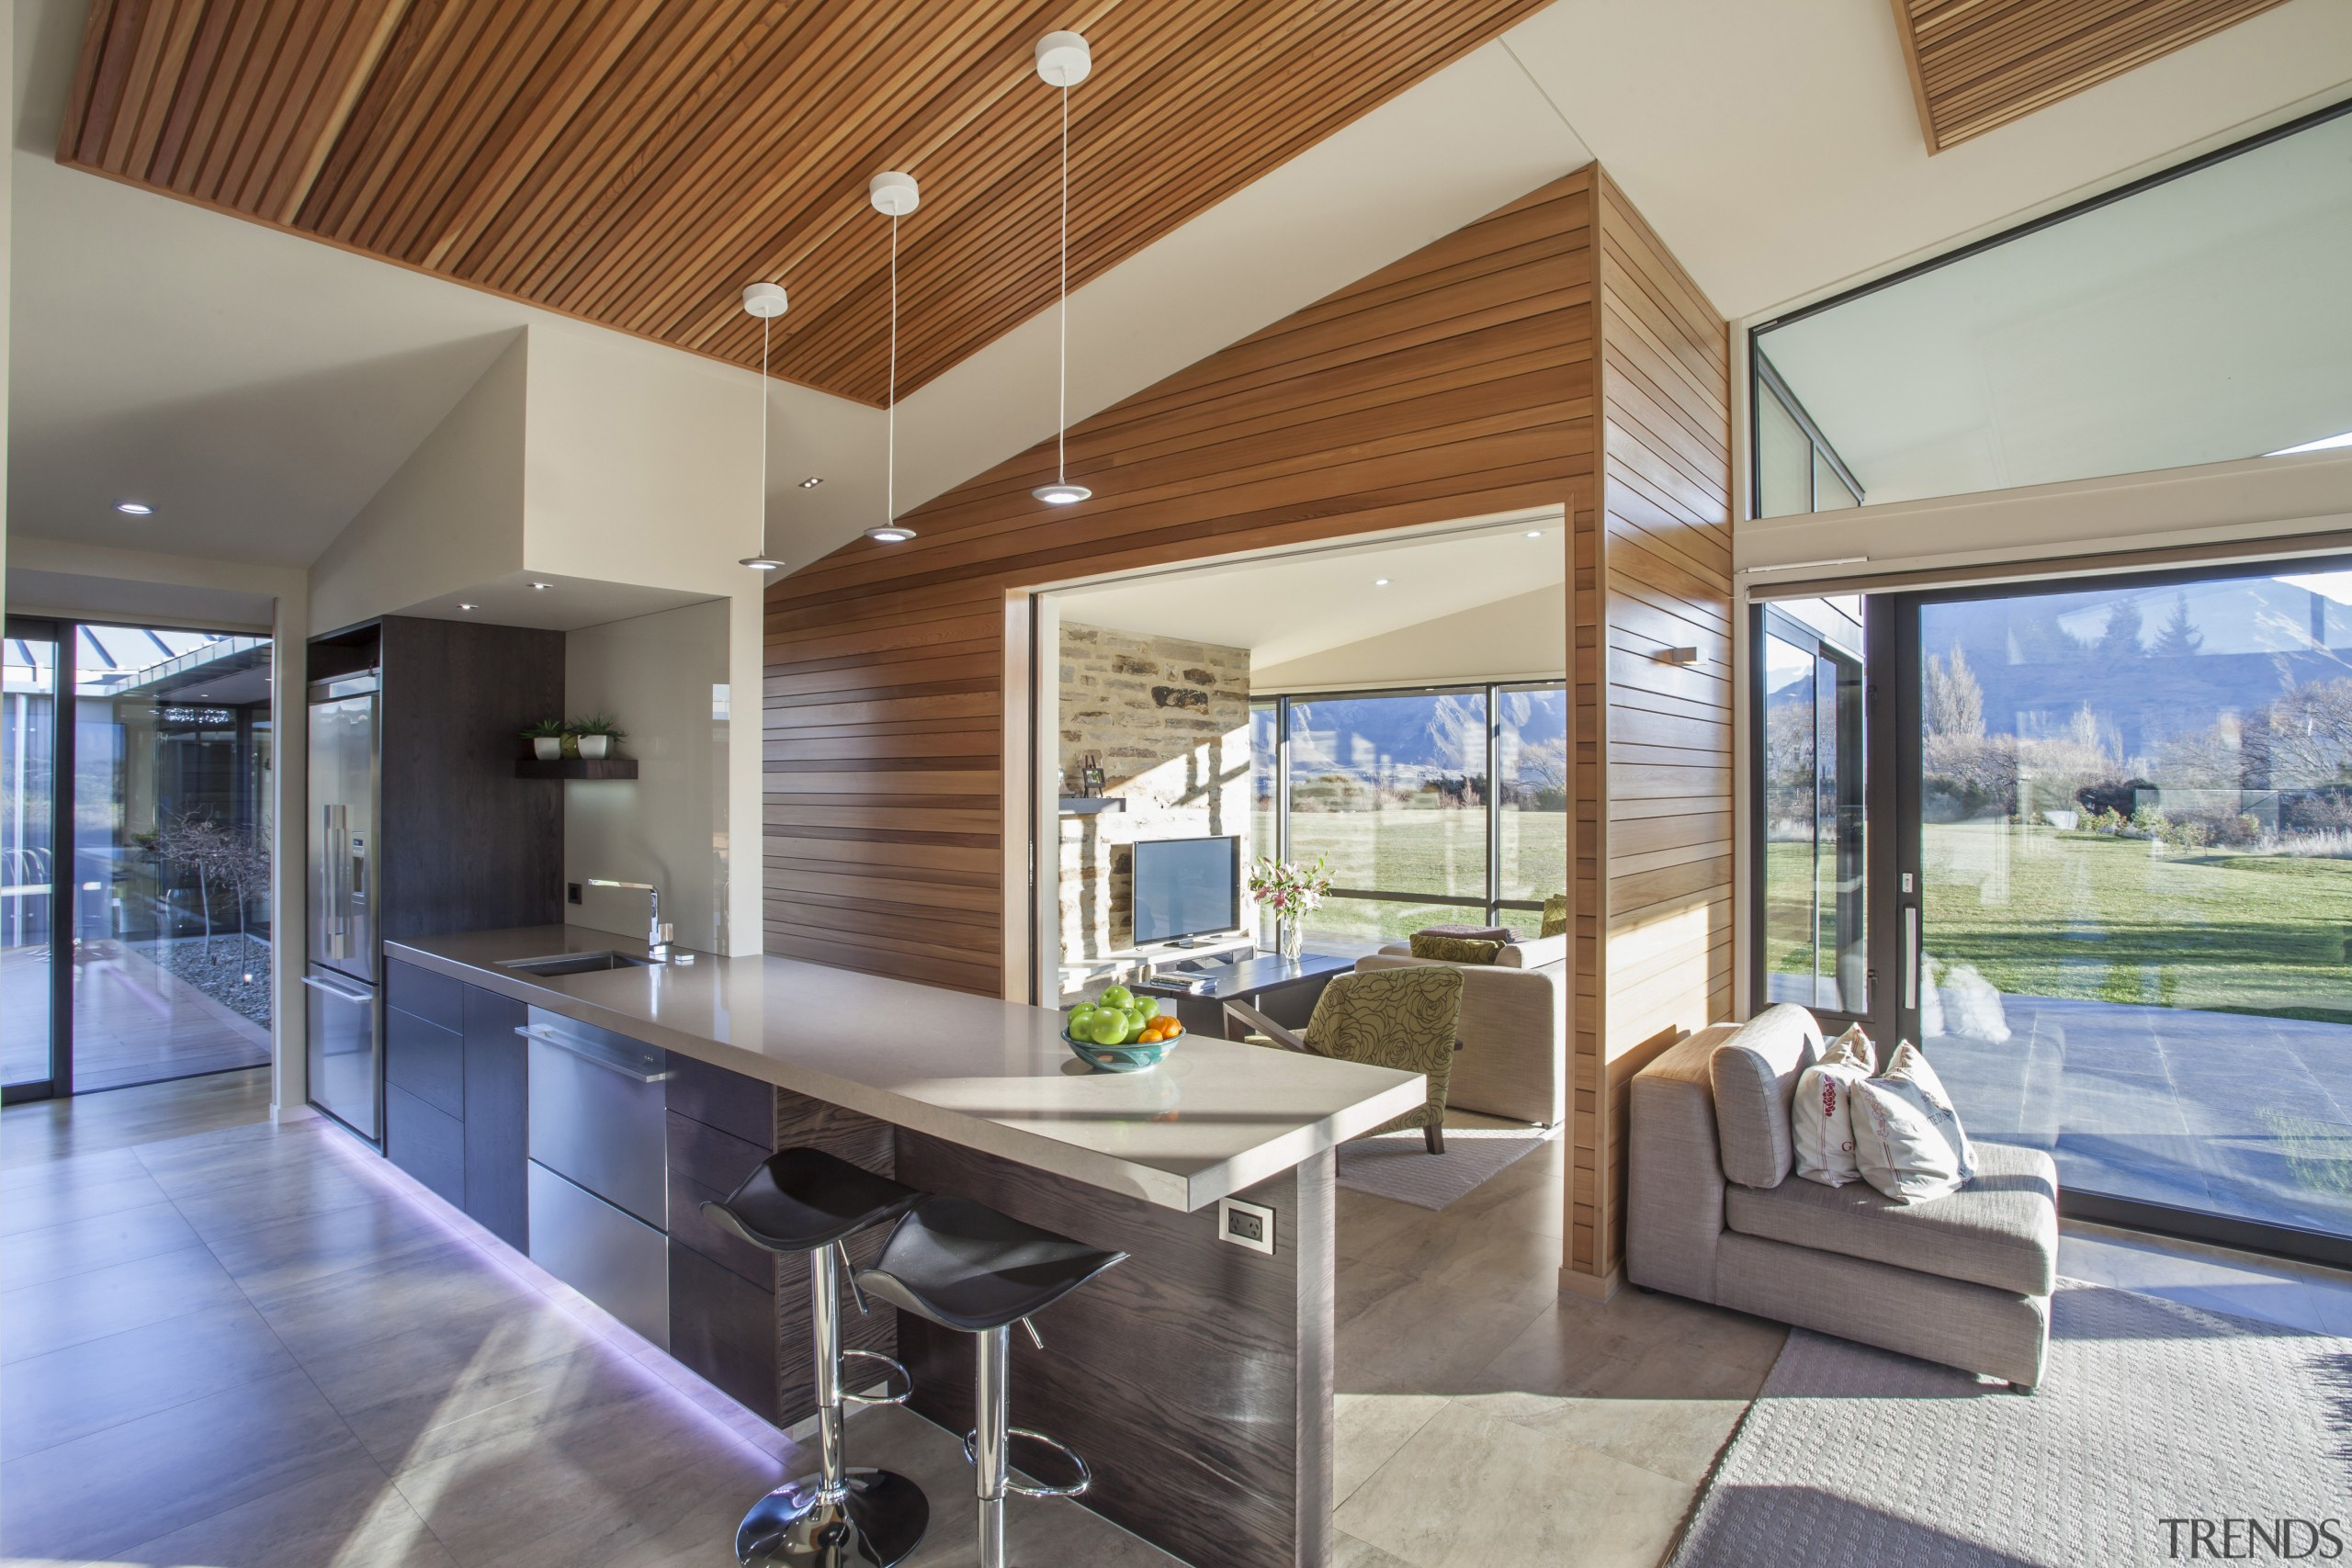 A timber veneer galley kitchen with scullery sits architecture, estate, house, interior design, real estate, window, gray